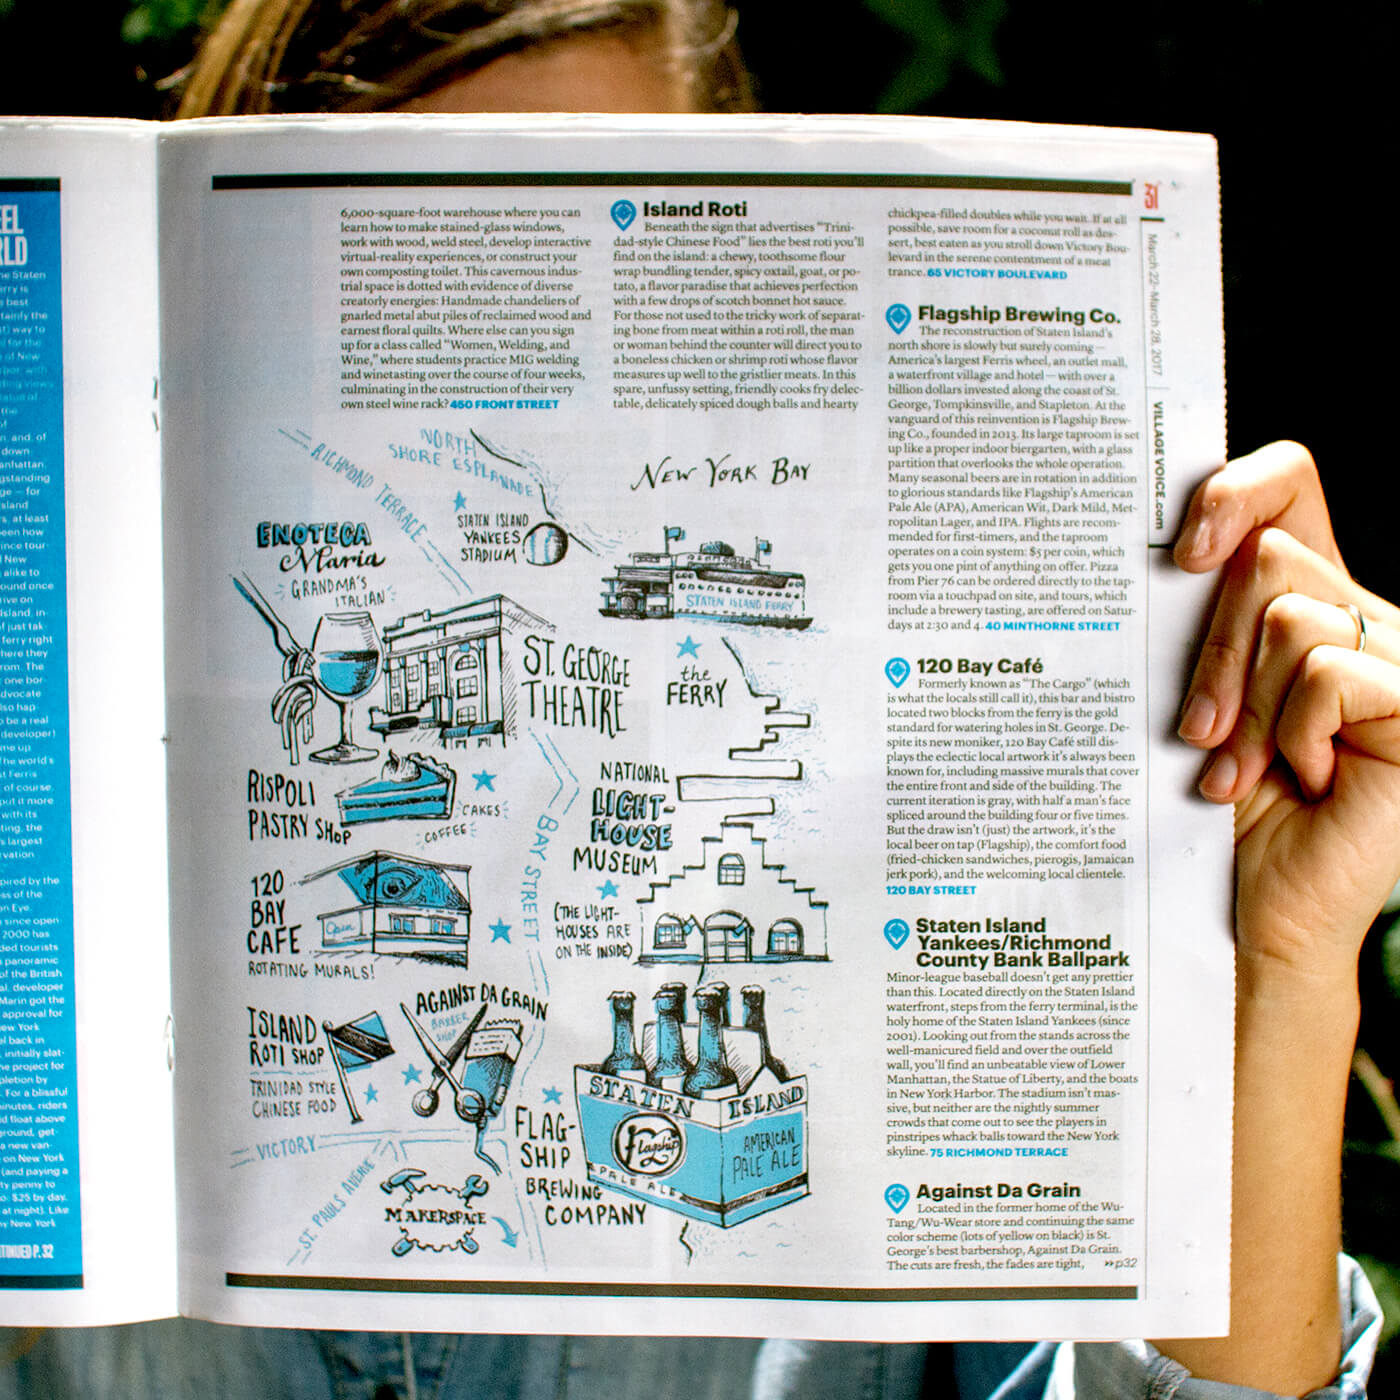 """The Village Voice, """"Five Boroughs, No Waiting"""" - Illustrated maps for Village Voice's cover story """"New York by New Yorkers: A Local's Guide to the City's Neighborhoods from Art & Activism to Bodegas & Biryani."""""""